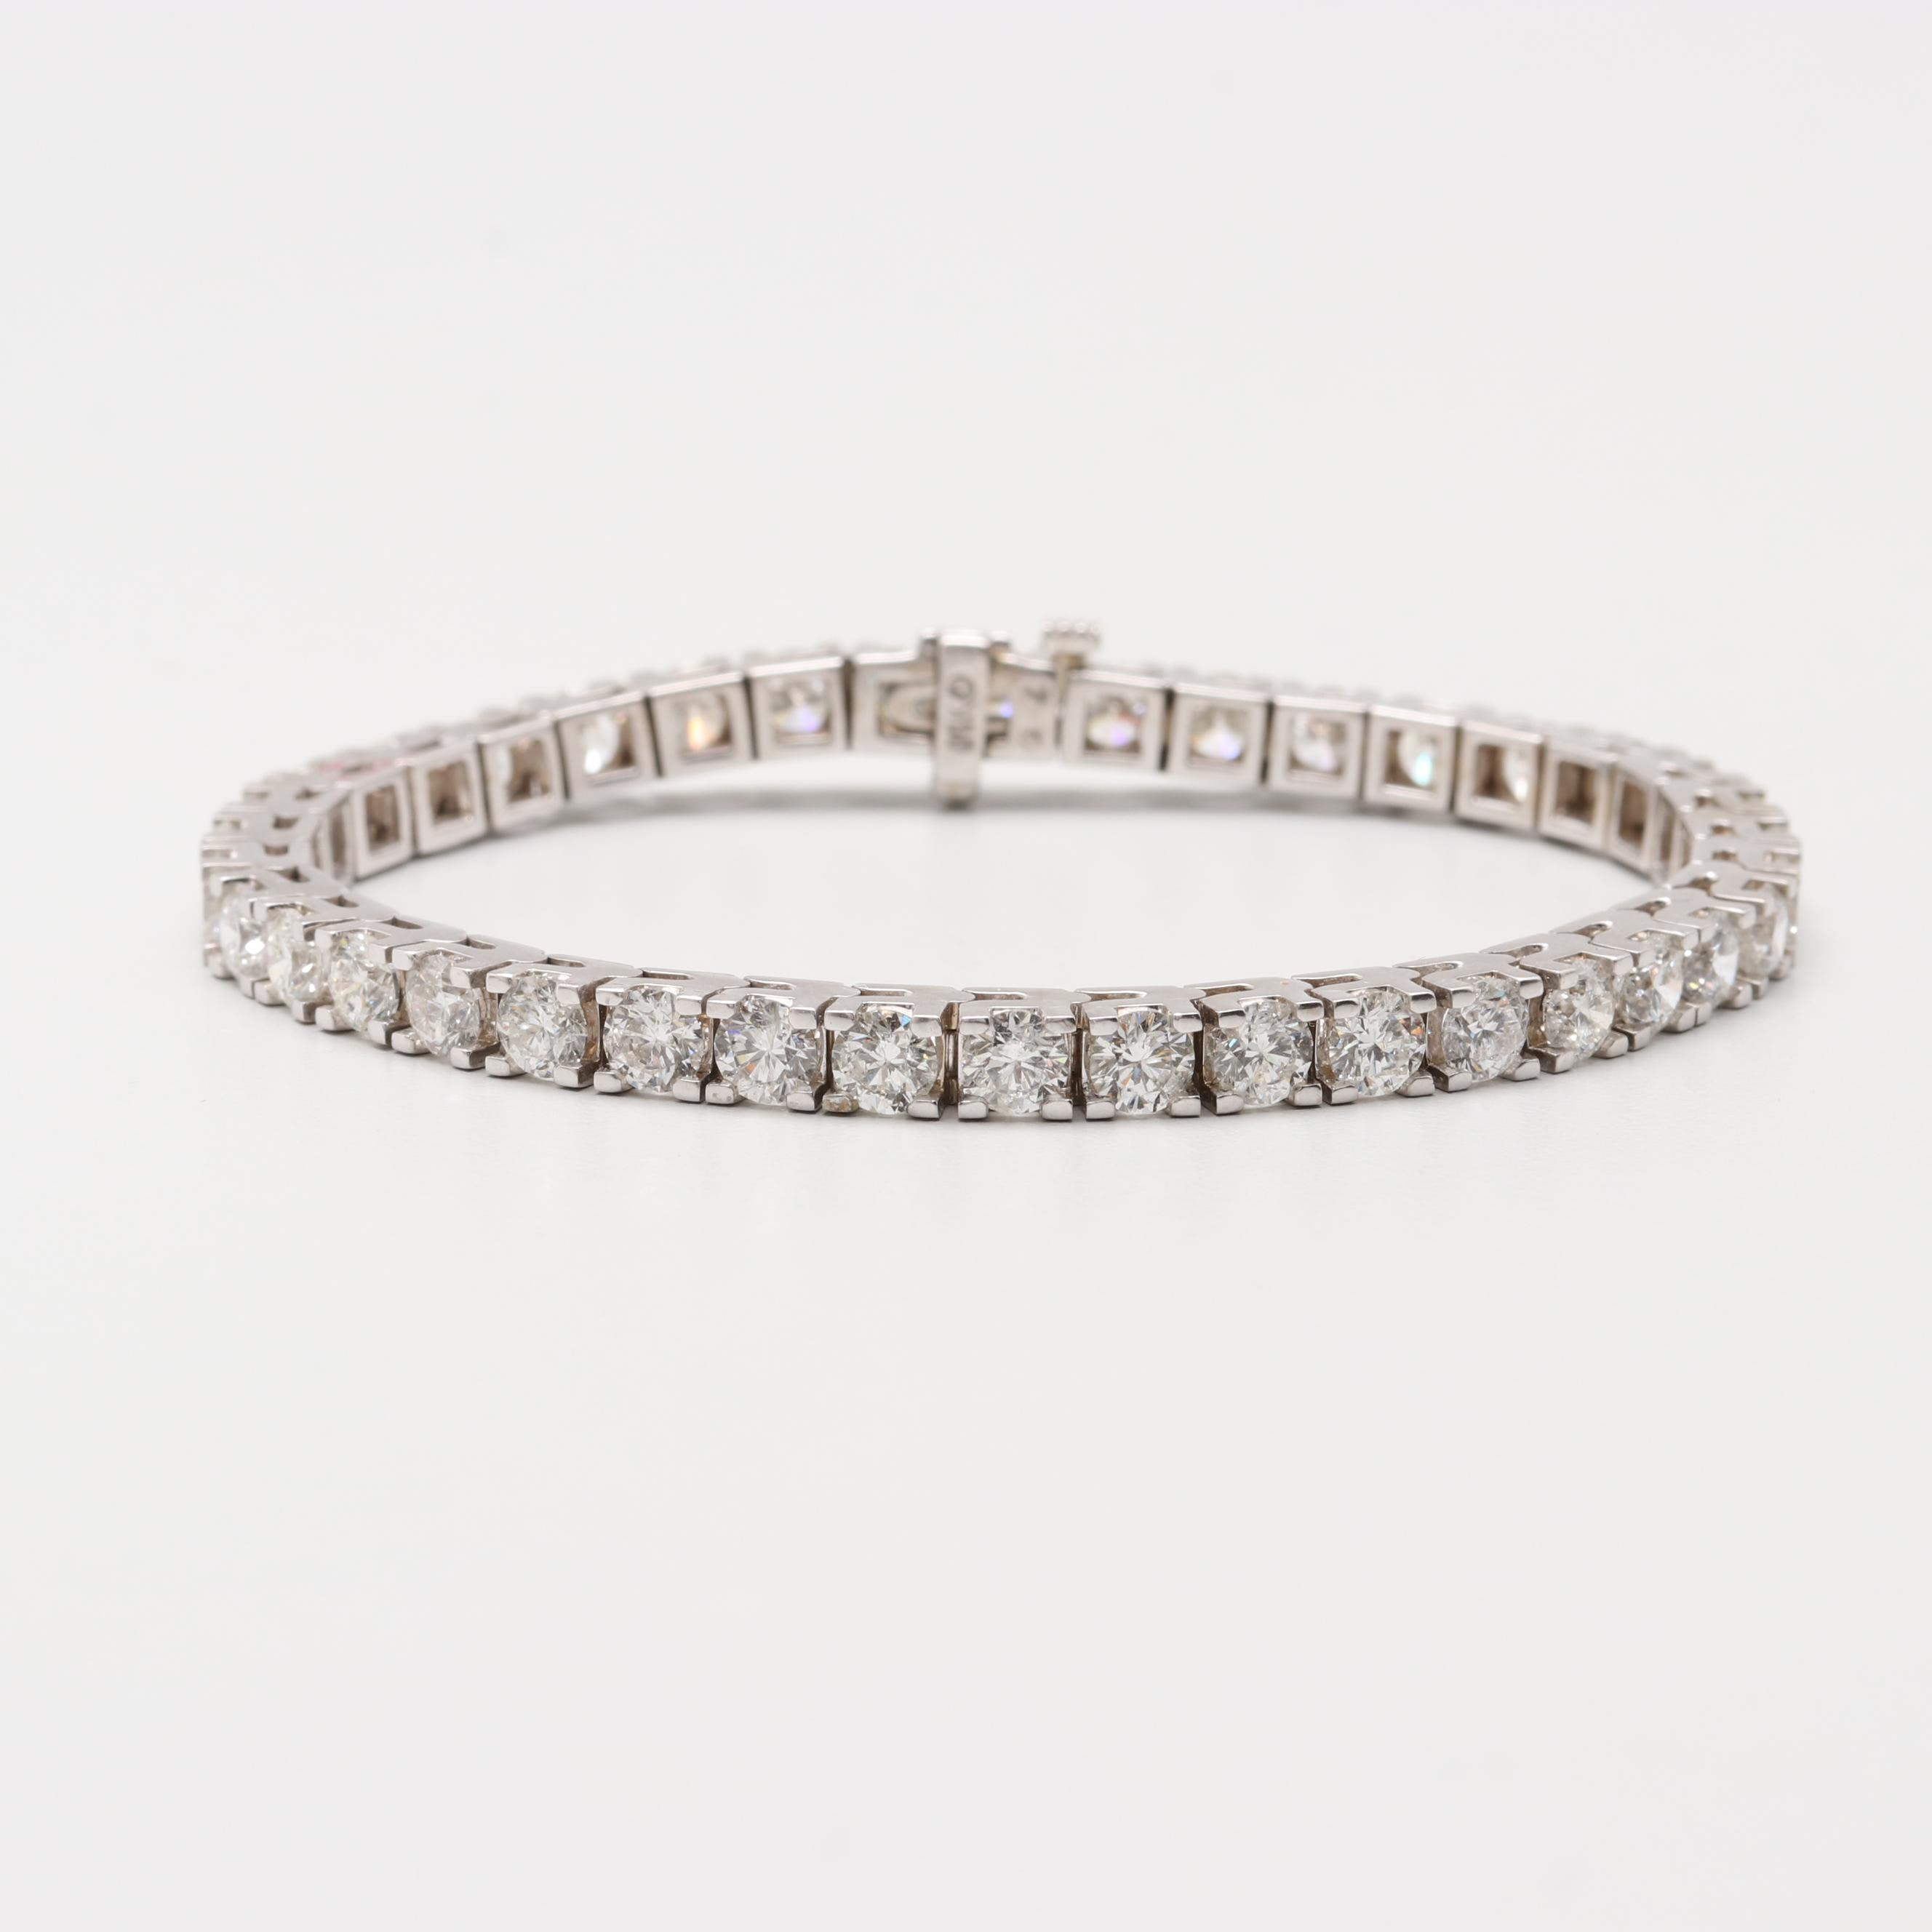 14K White Gold 10.94 CTW Diamond Tennis Bracelet